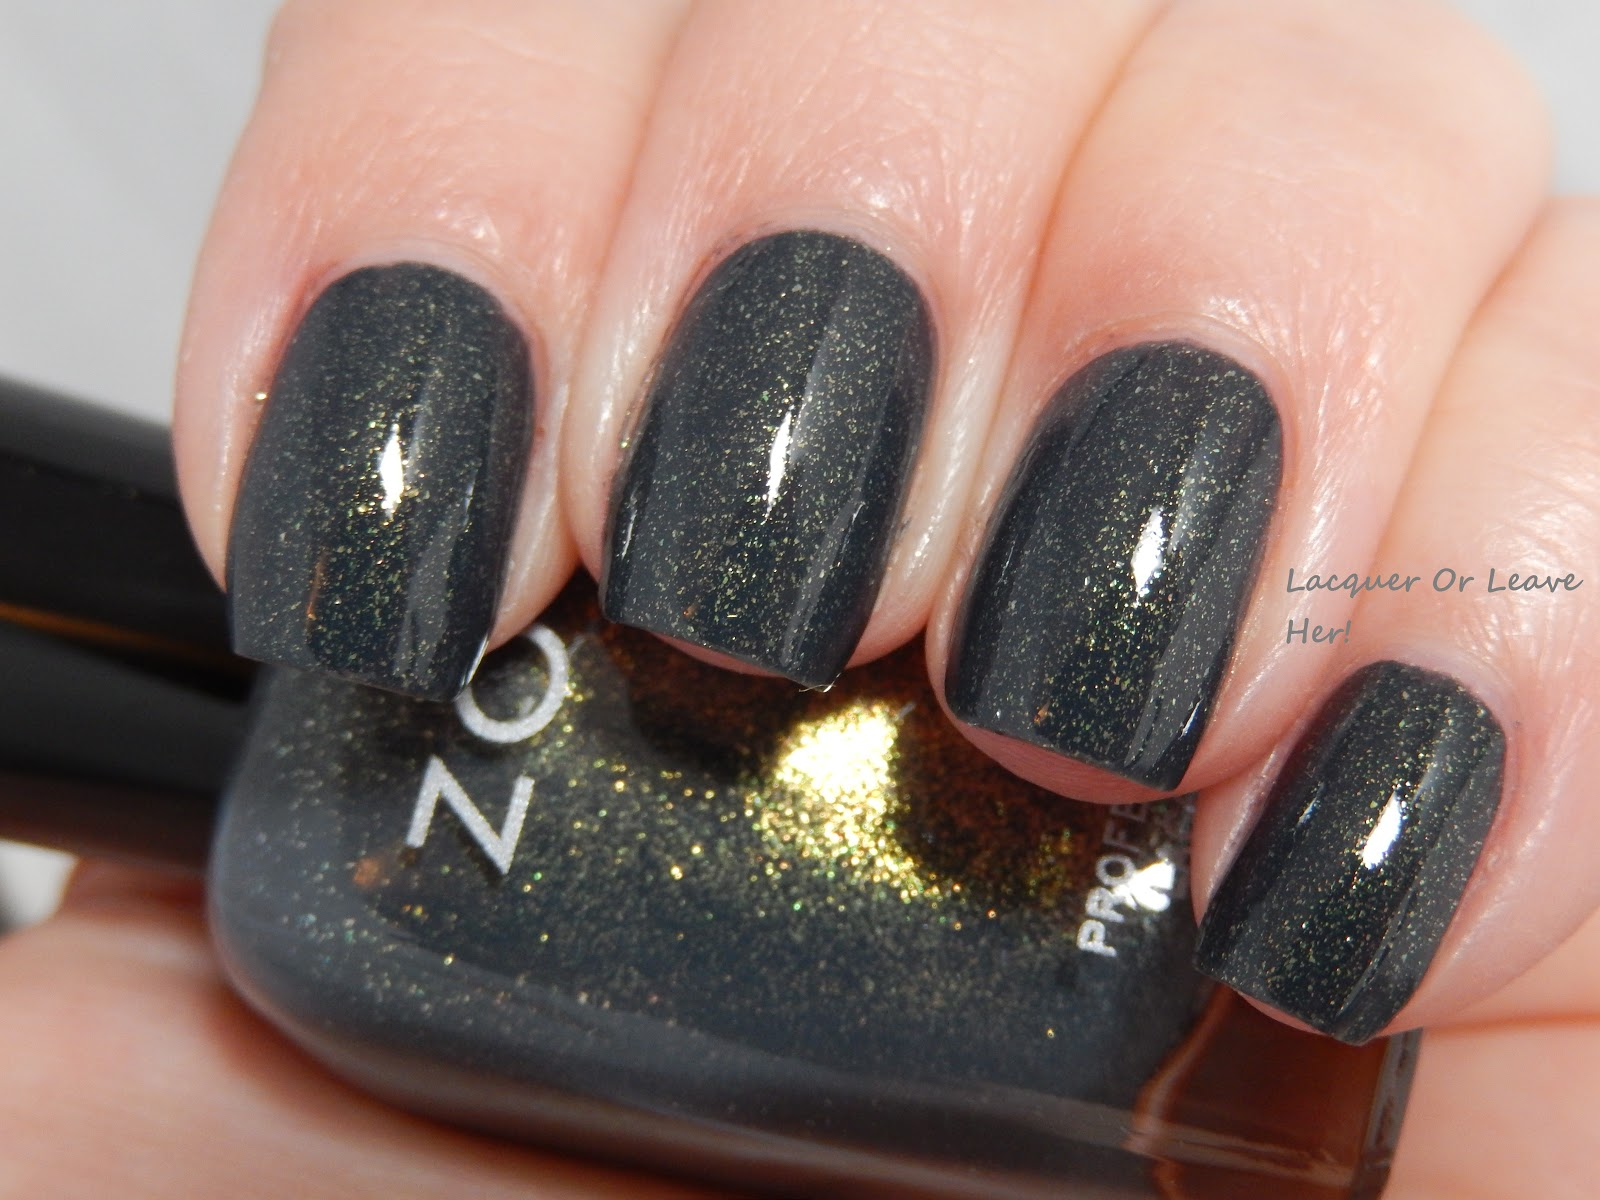 Lacquer or leave her review nail foil from charlies nail art zoya yuna prinsesfo Images